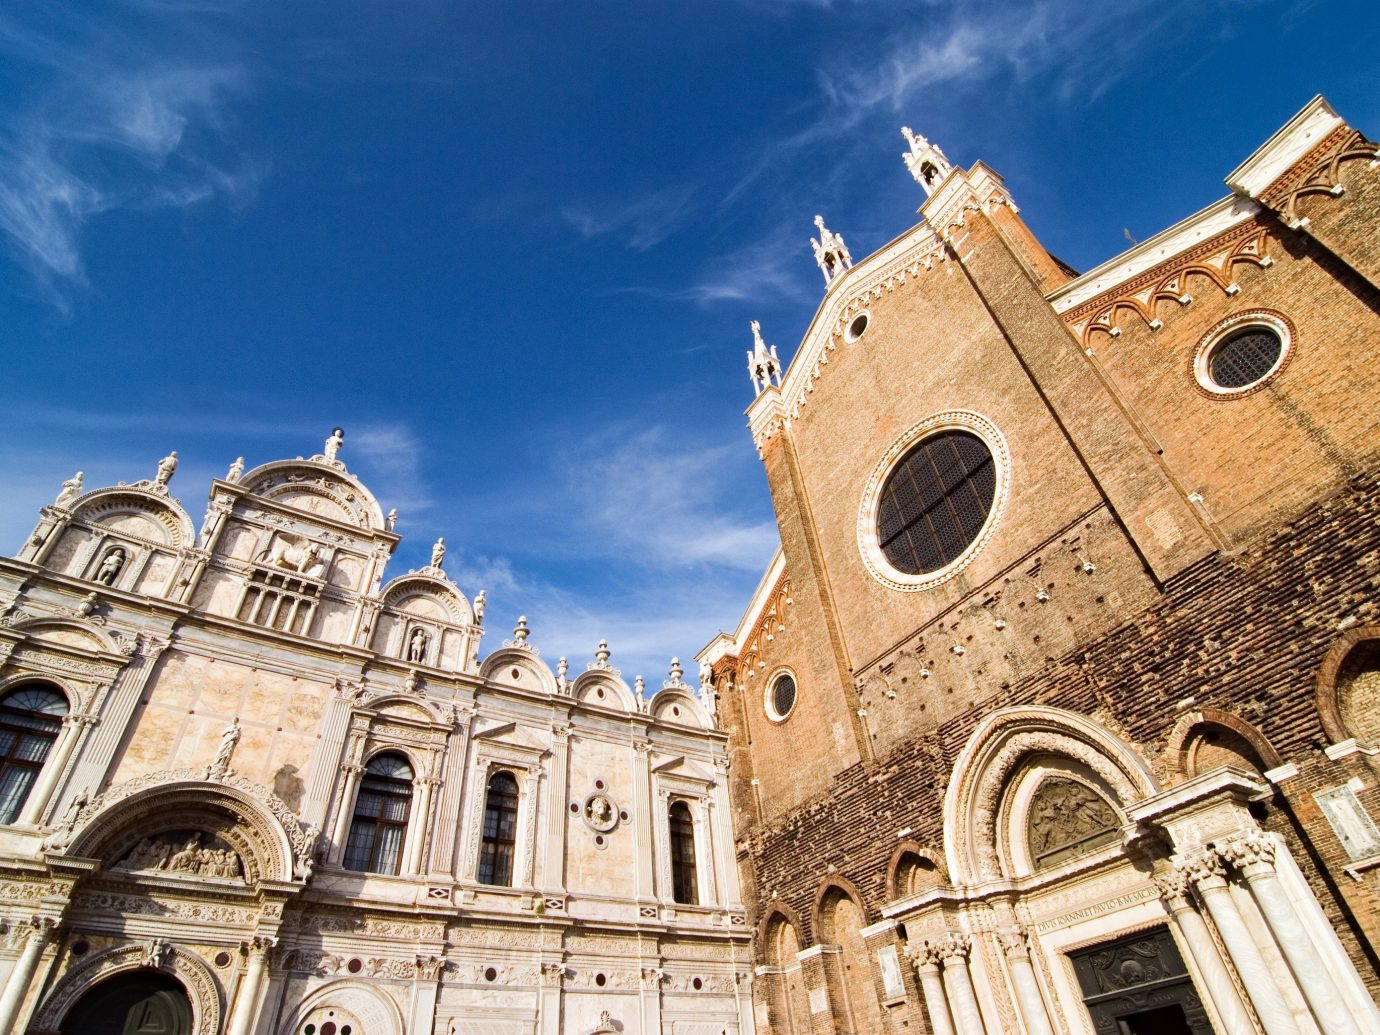 Trip Ideas sky building outdoor landmark Architecture cathedral facade basilica Church ancient history place of worship stone